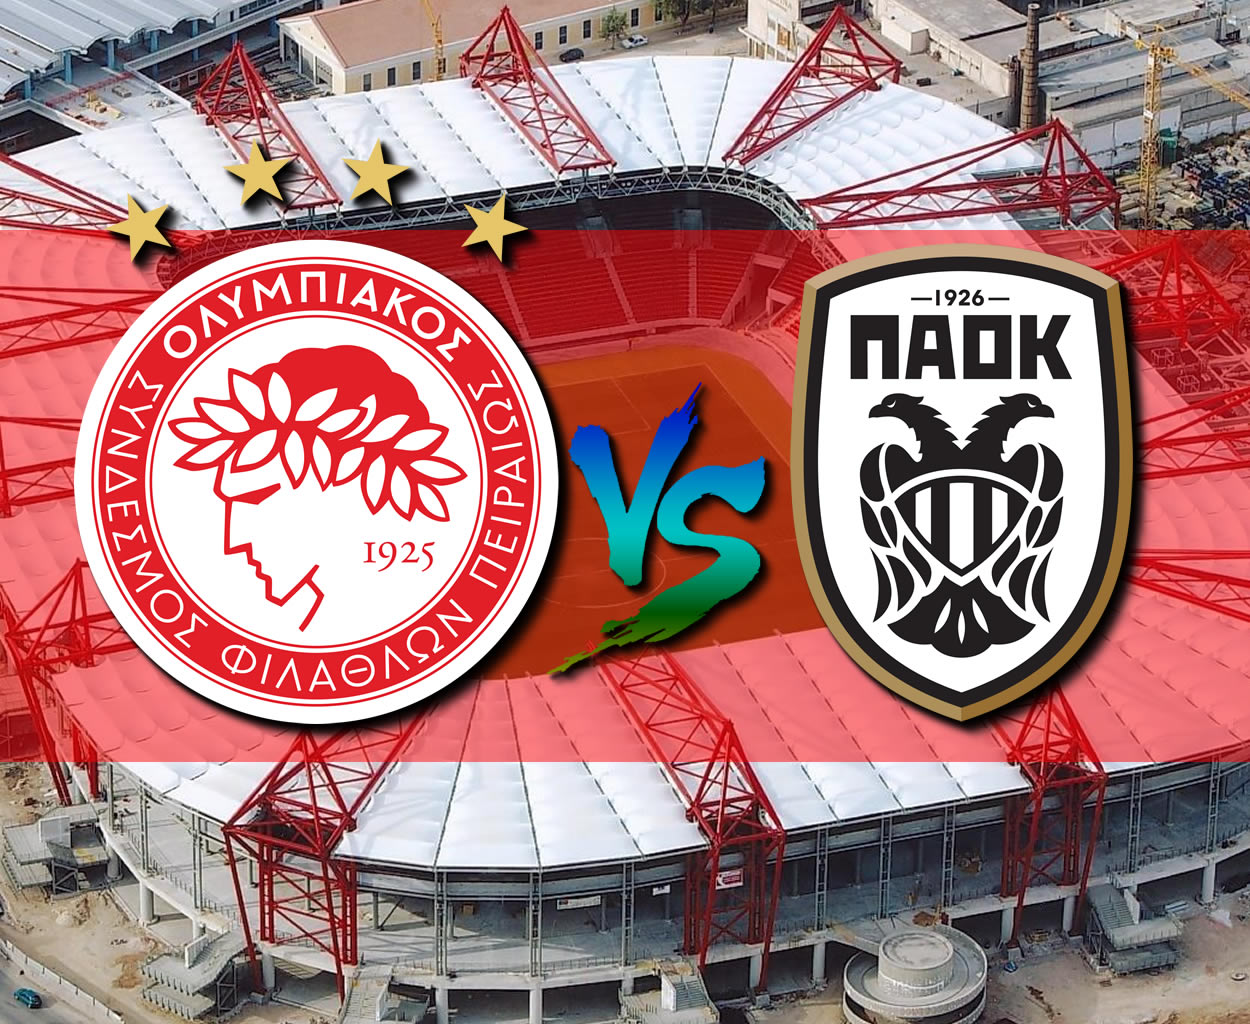 olymbiakos paok live streaming